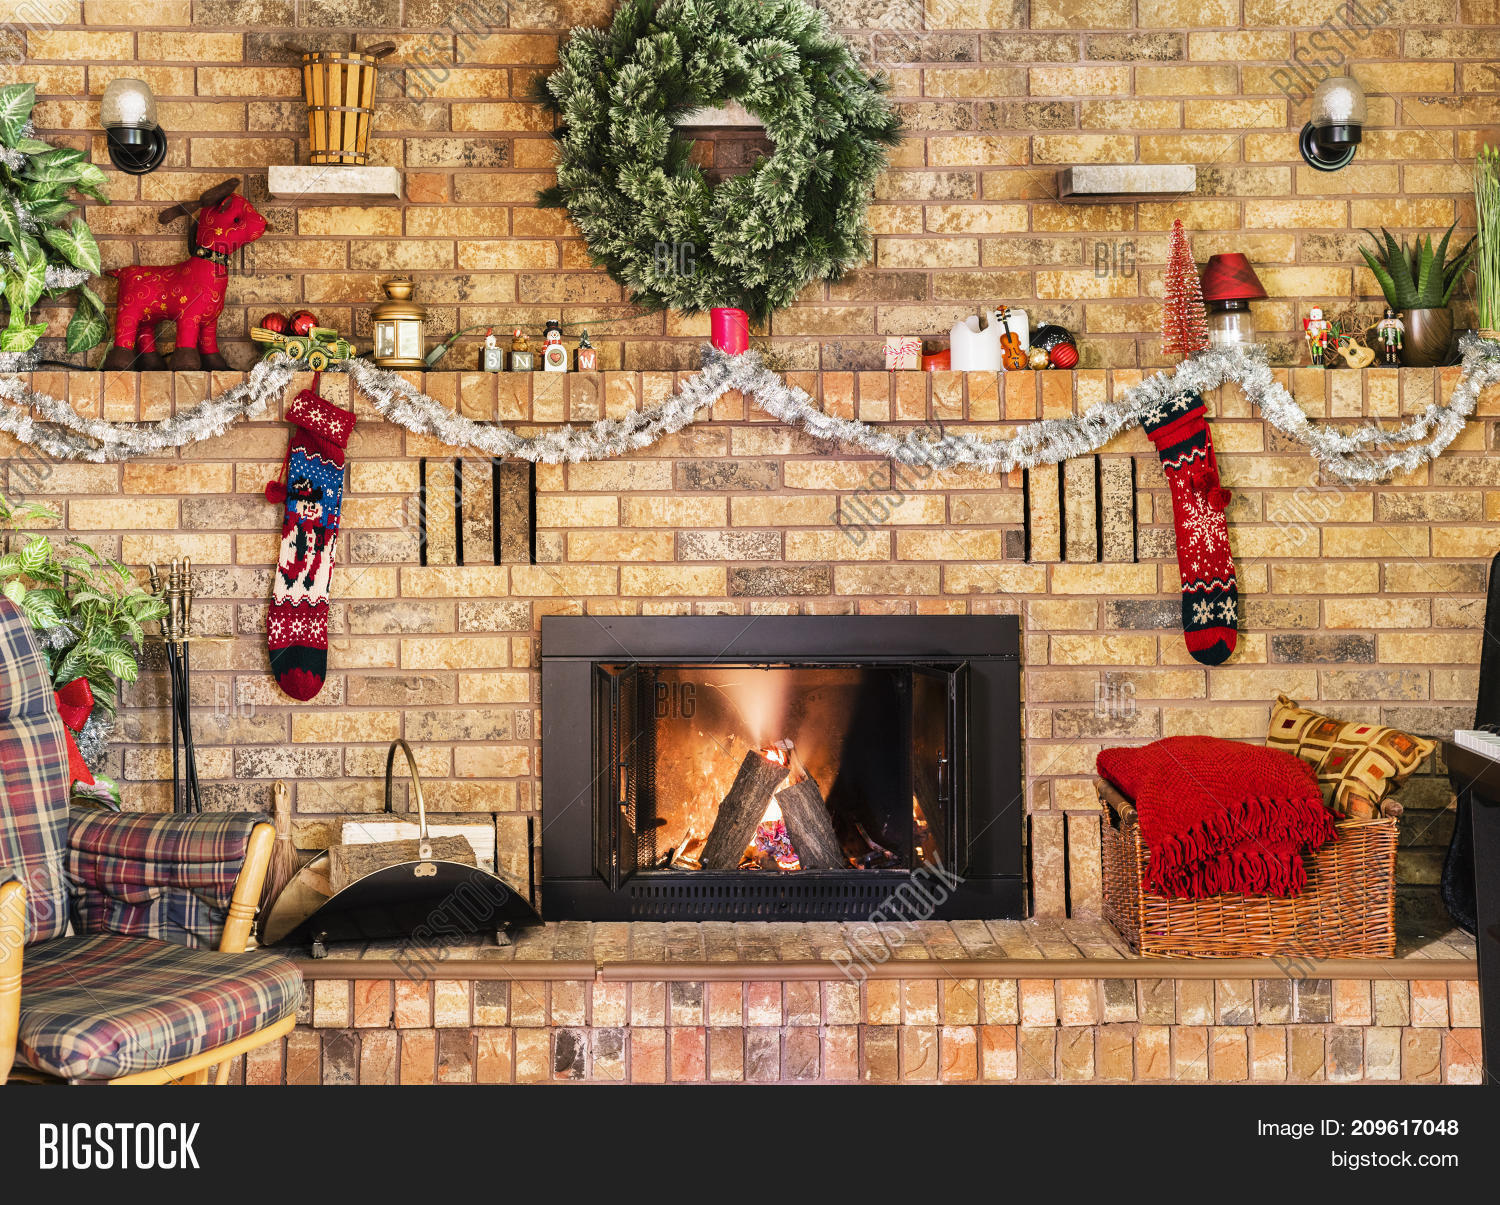 How To Decorate A Brick Fireplace Cozy Fire Brick Image Photo Free Trial Bigstock